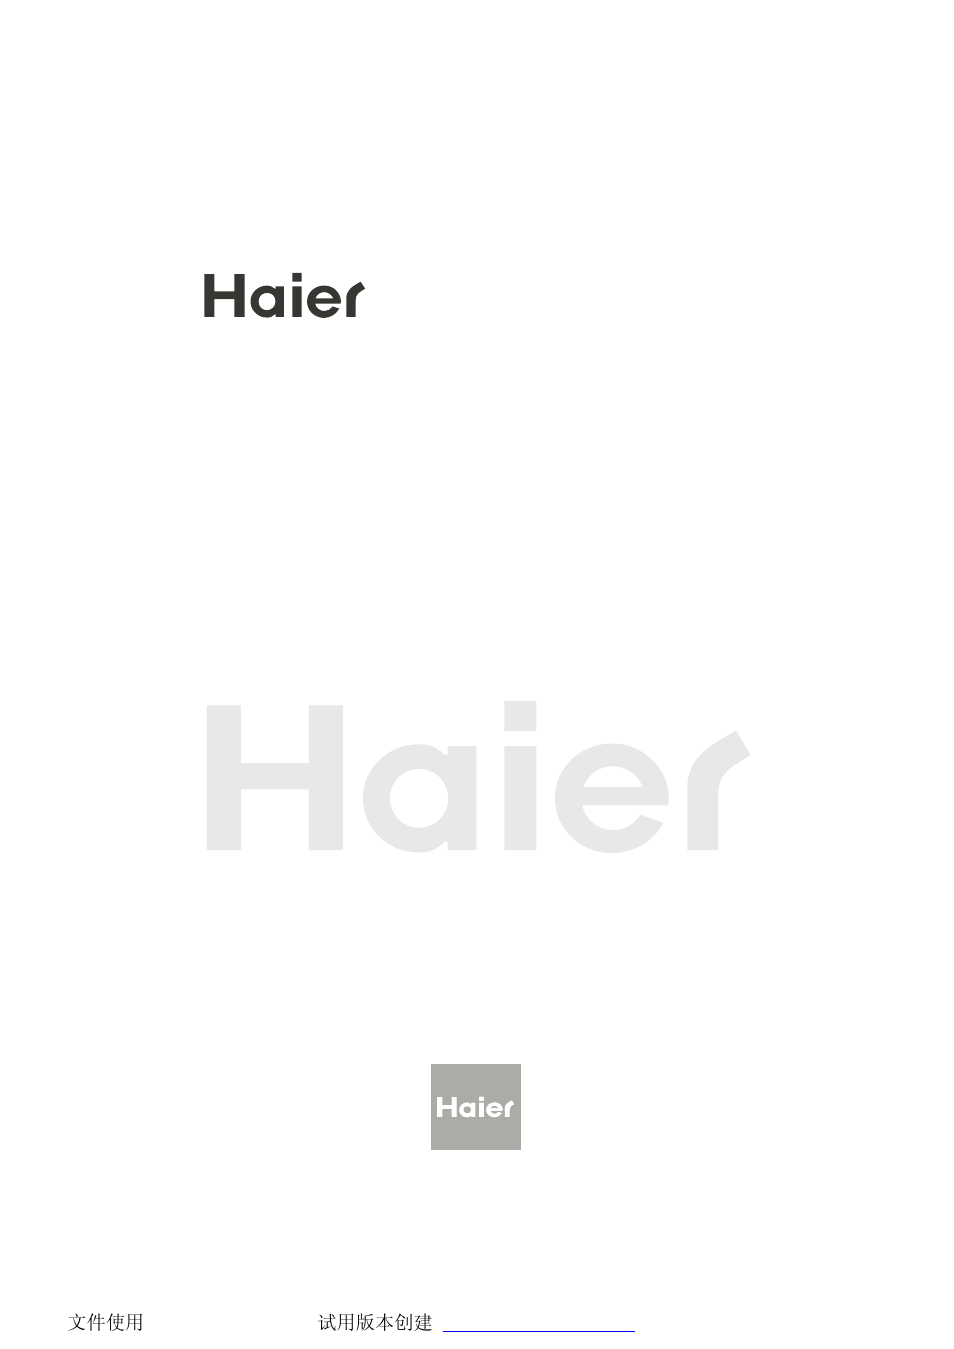 haier LCD TV L32A9A User Manual | 47 pages | Also for: LCD TV L37A9A, LCD TV  L26A9A